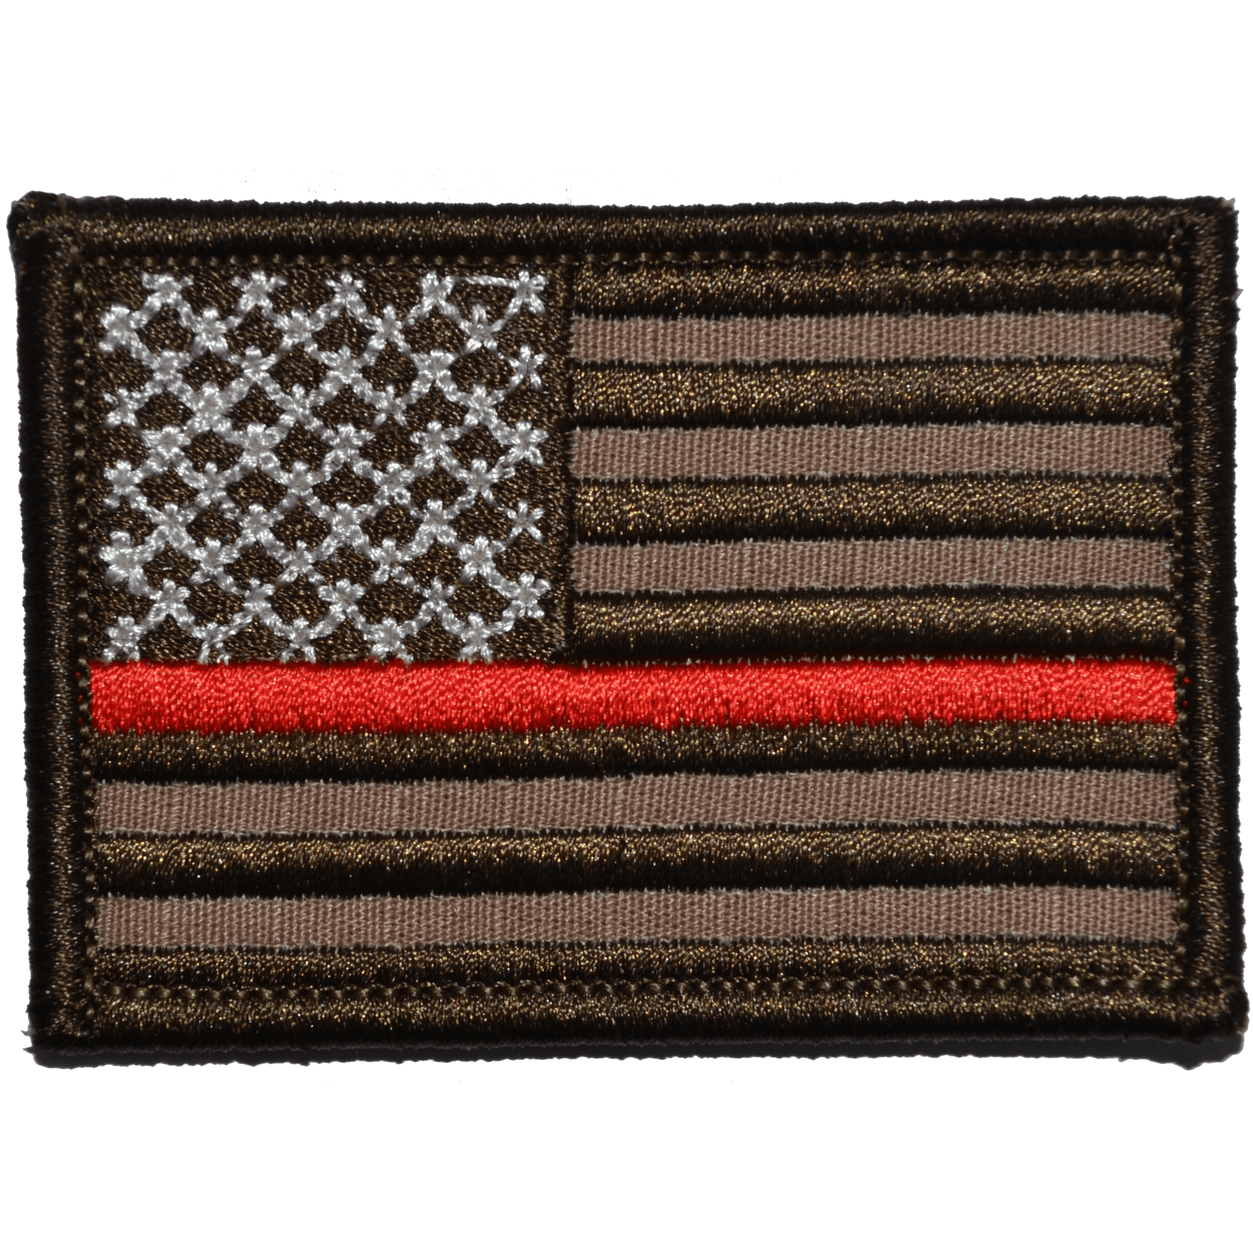 Thin Red Line Firefighter American Flag - 2x3 Patch